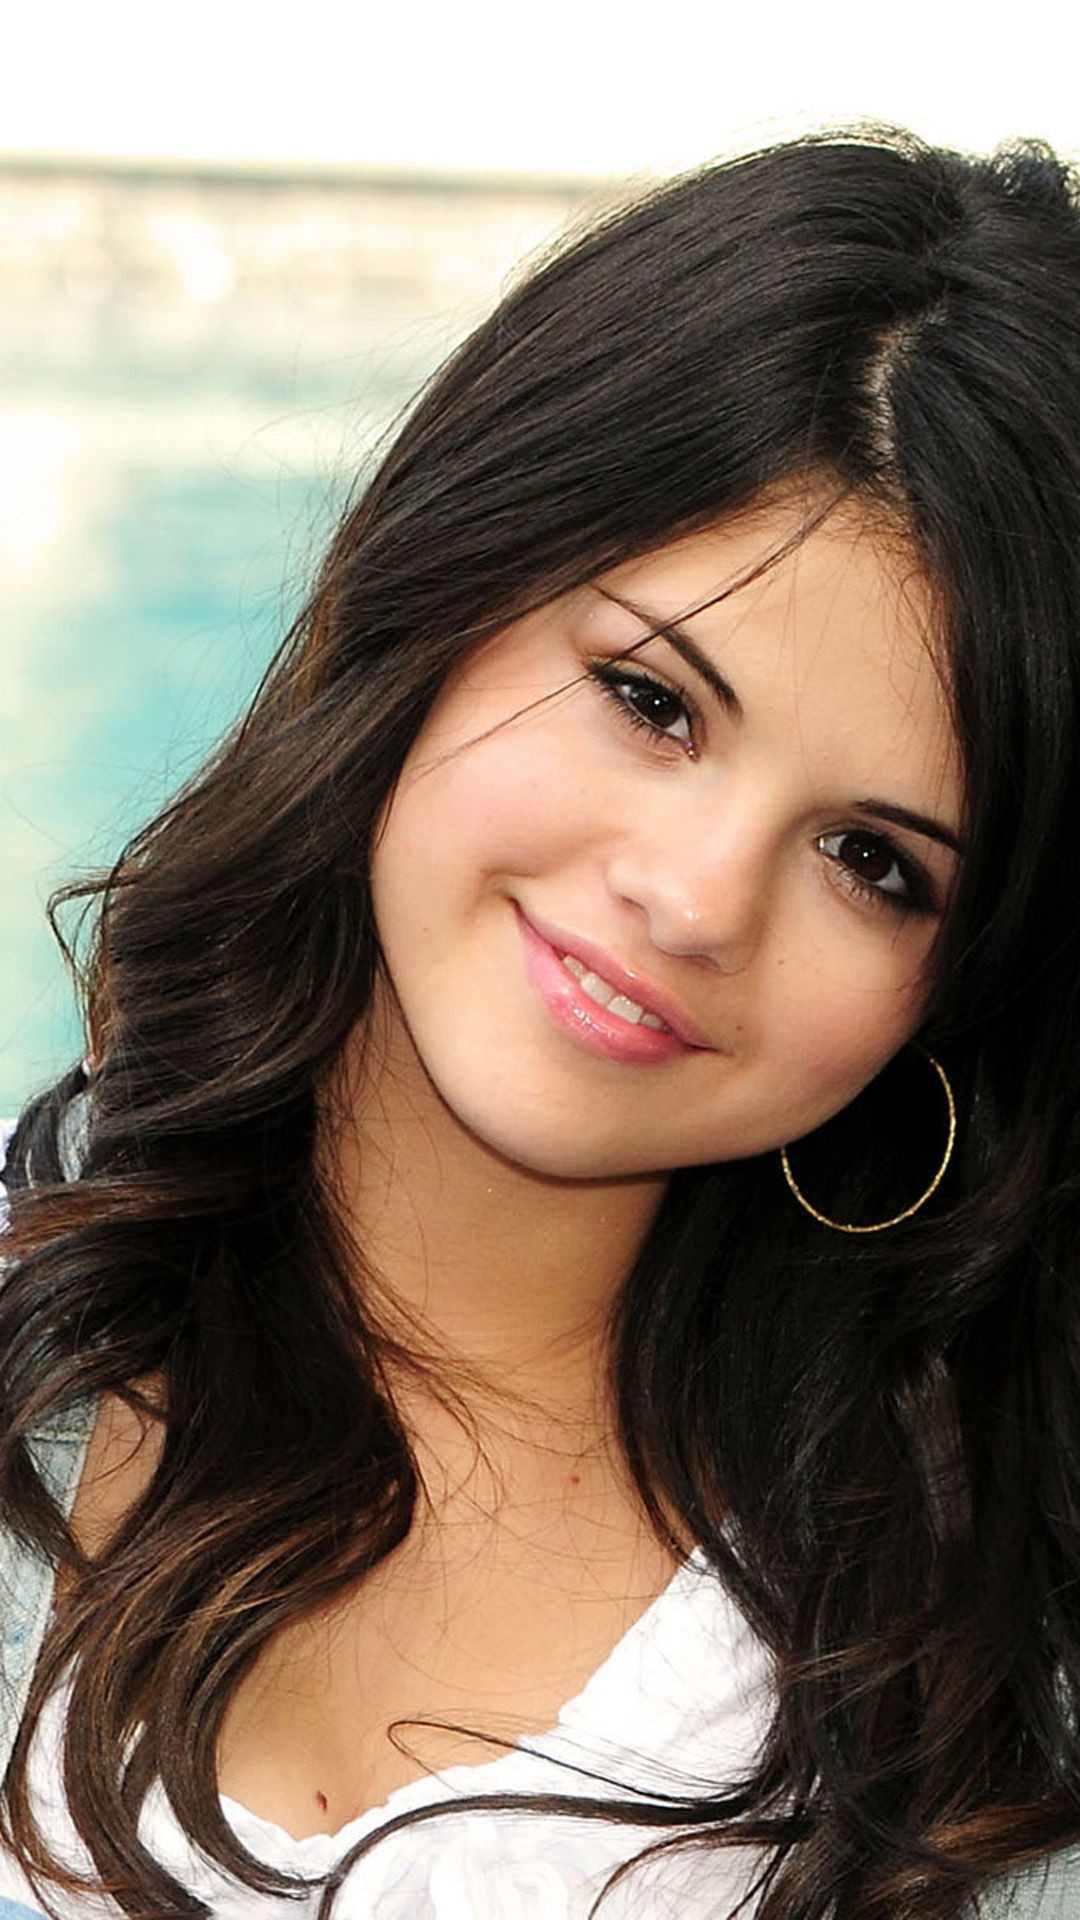 Beautiful Girl Hd Wallpaper Pictures Download Selena Gomez Iphone Wallpaper 80 Images